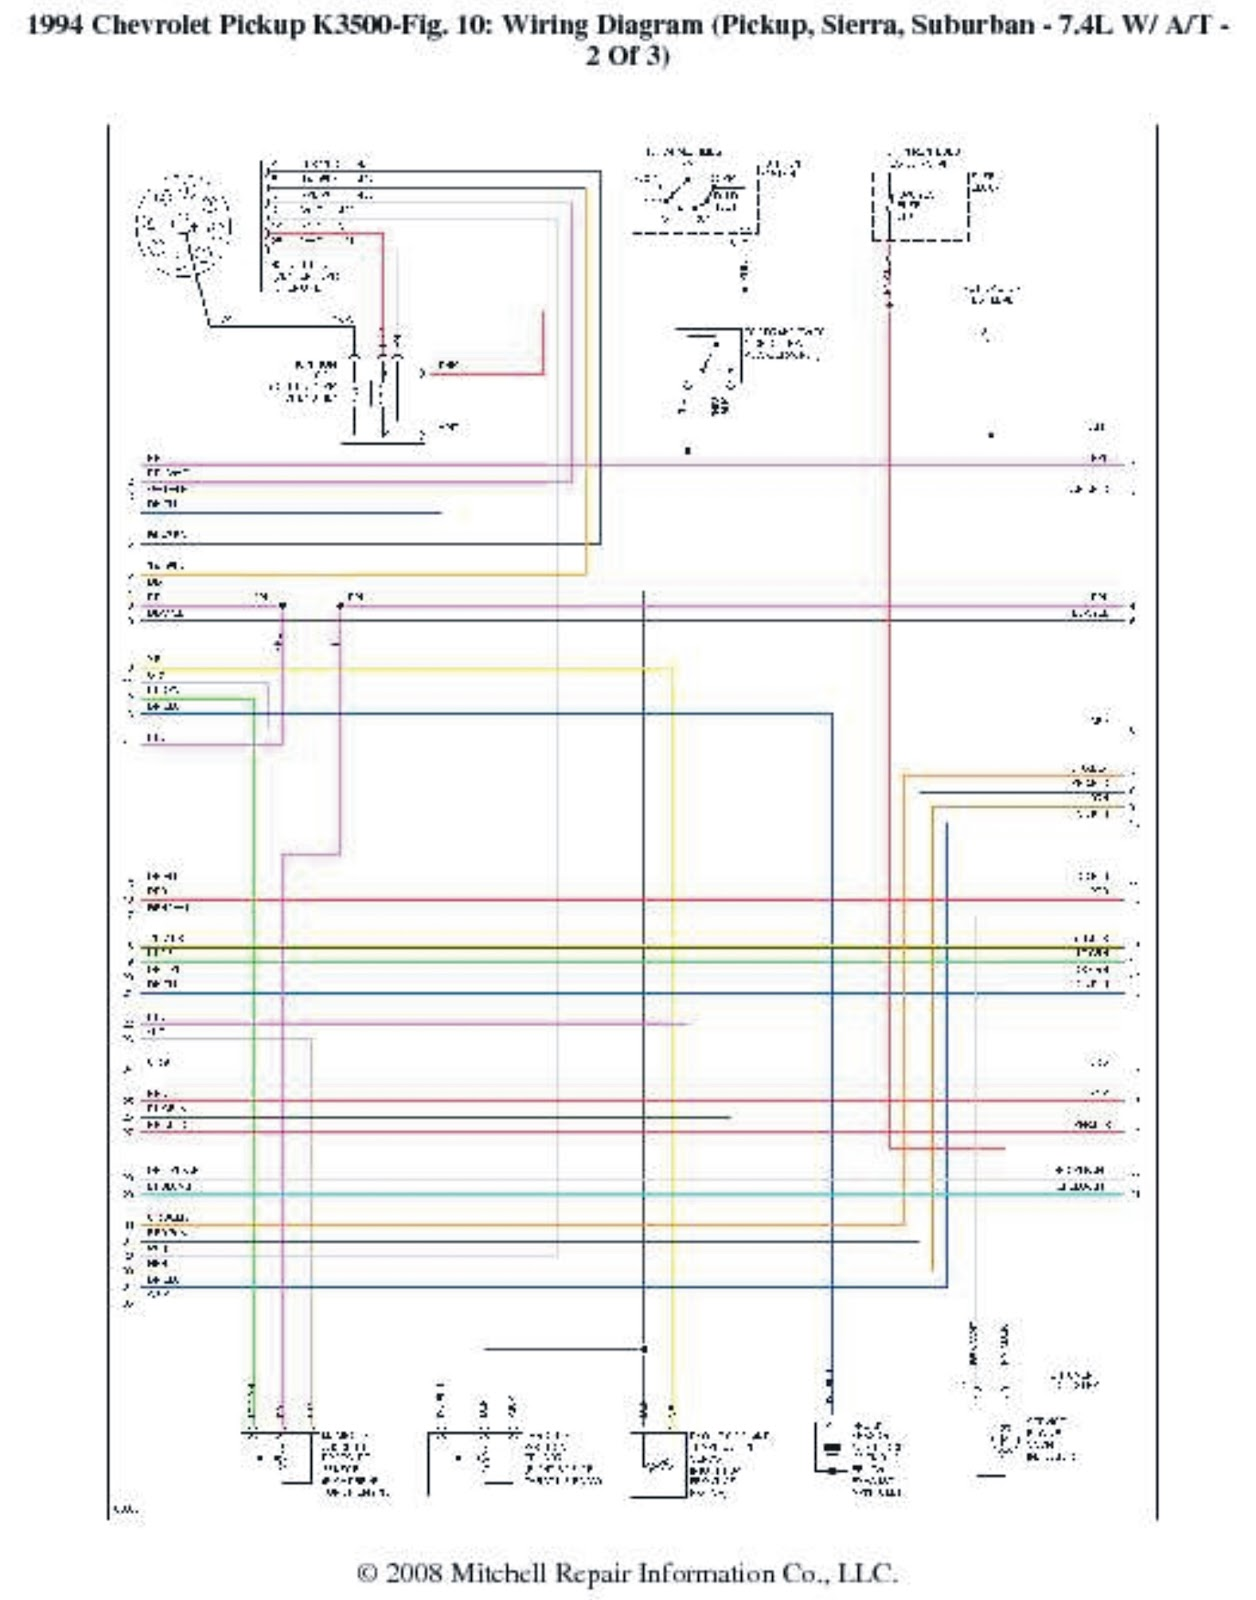 93 Chevy S10 Pick Up Wiring Diagram Electrical Diagrams 1993 Silverado Fuse Box Free Download